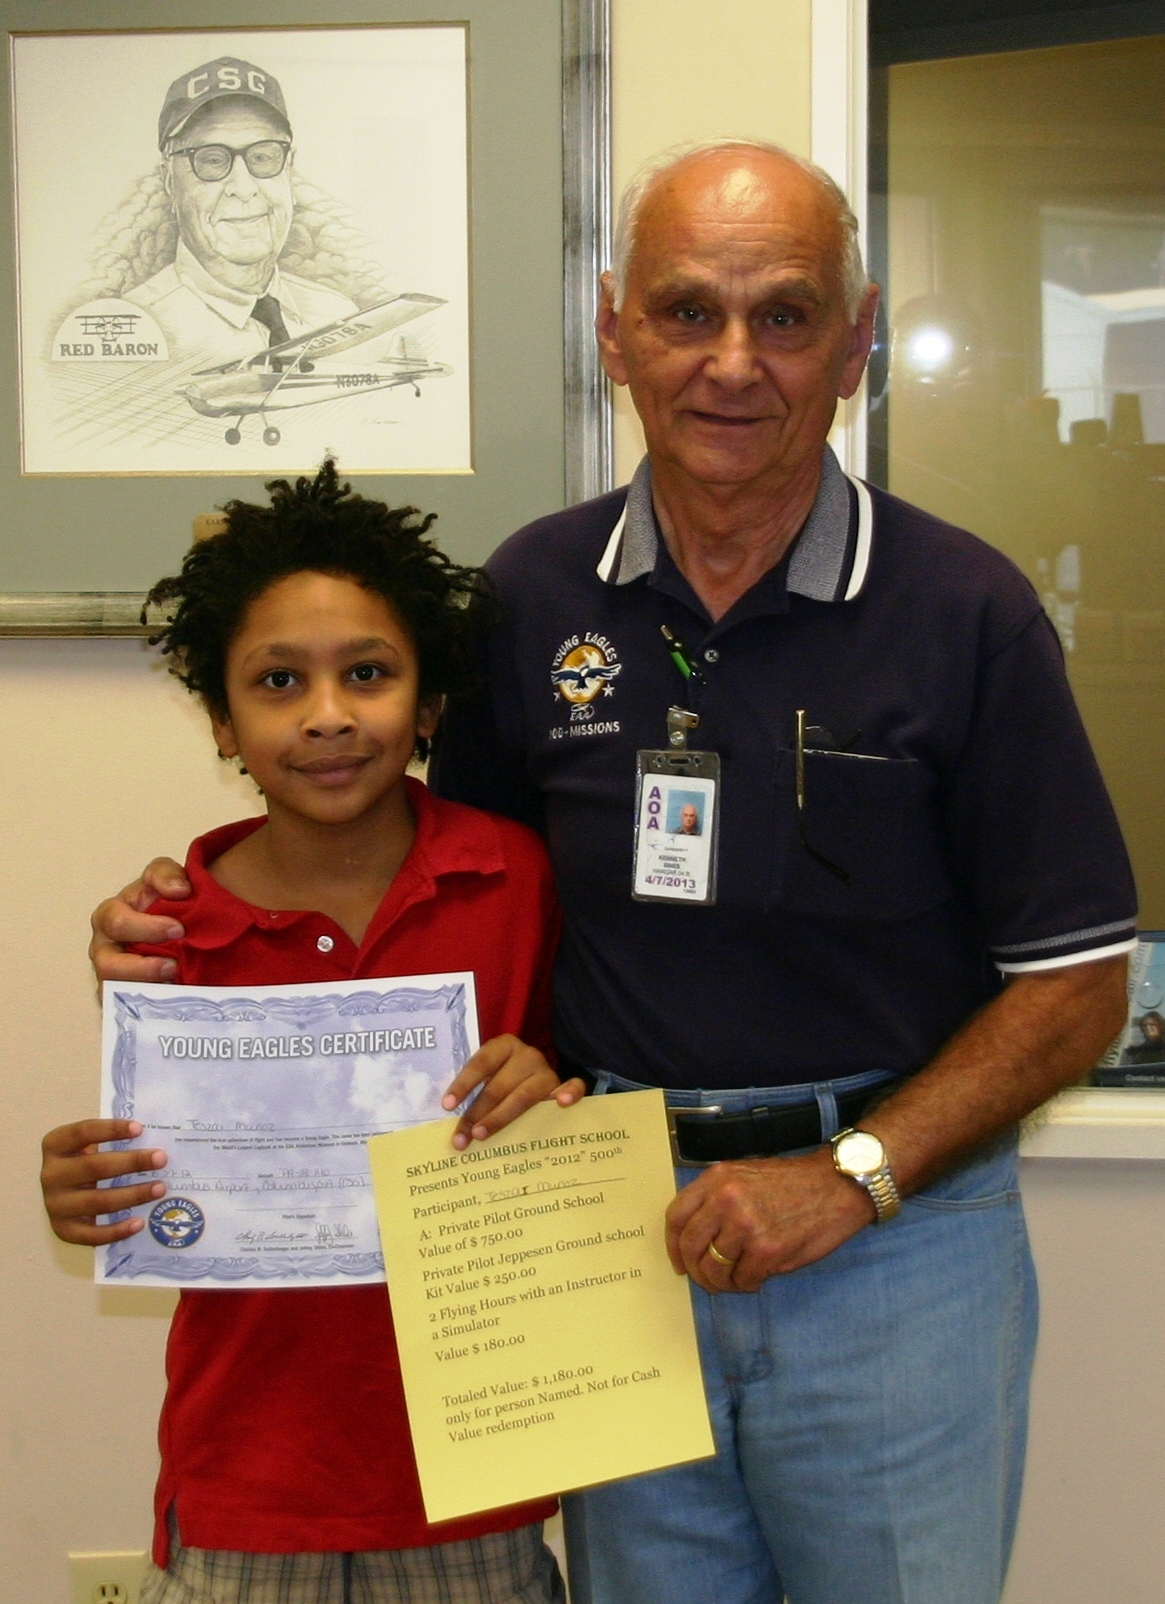 500th Young Eagle takes flight for 2012